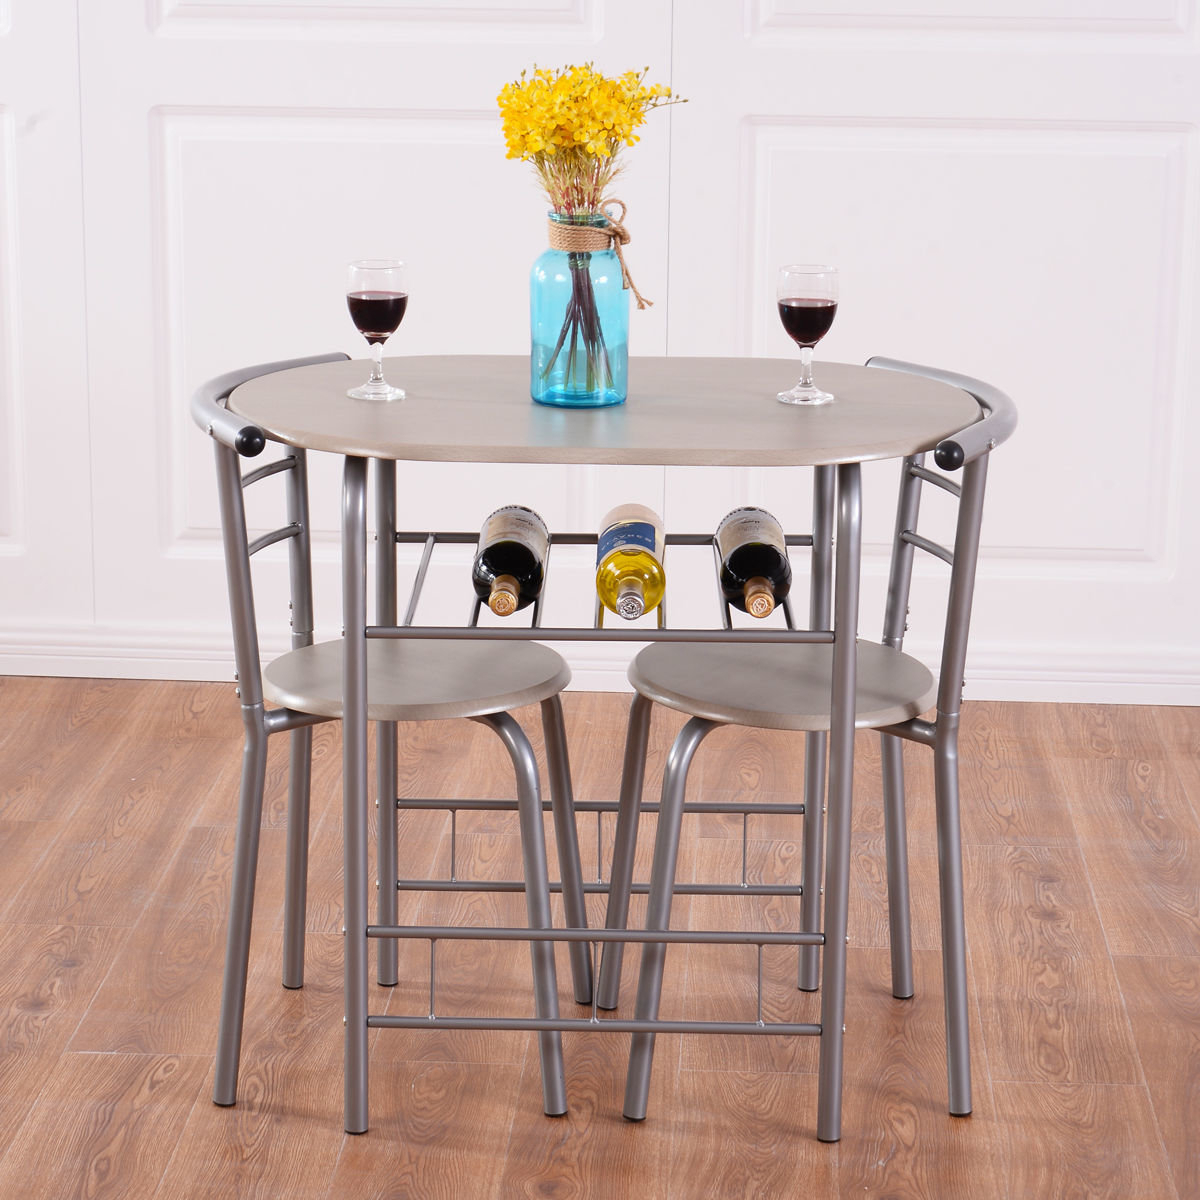 Wayfair Throughout Ligon 3 Piece Breakfast Nook Dining Sets (View 4 of 25)